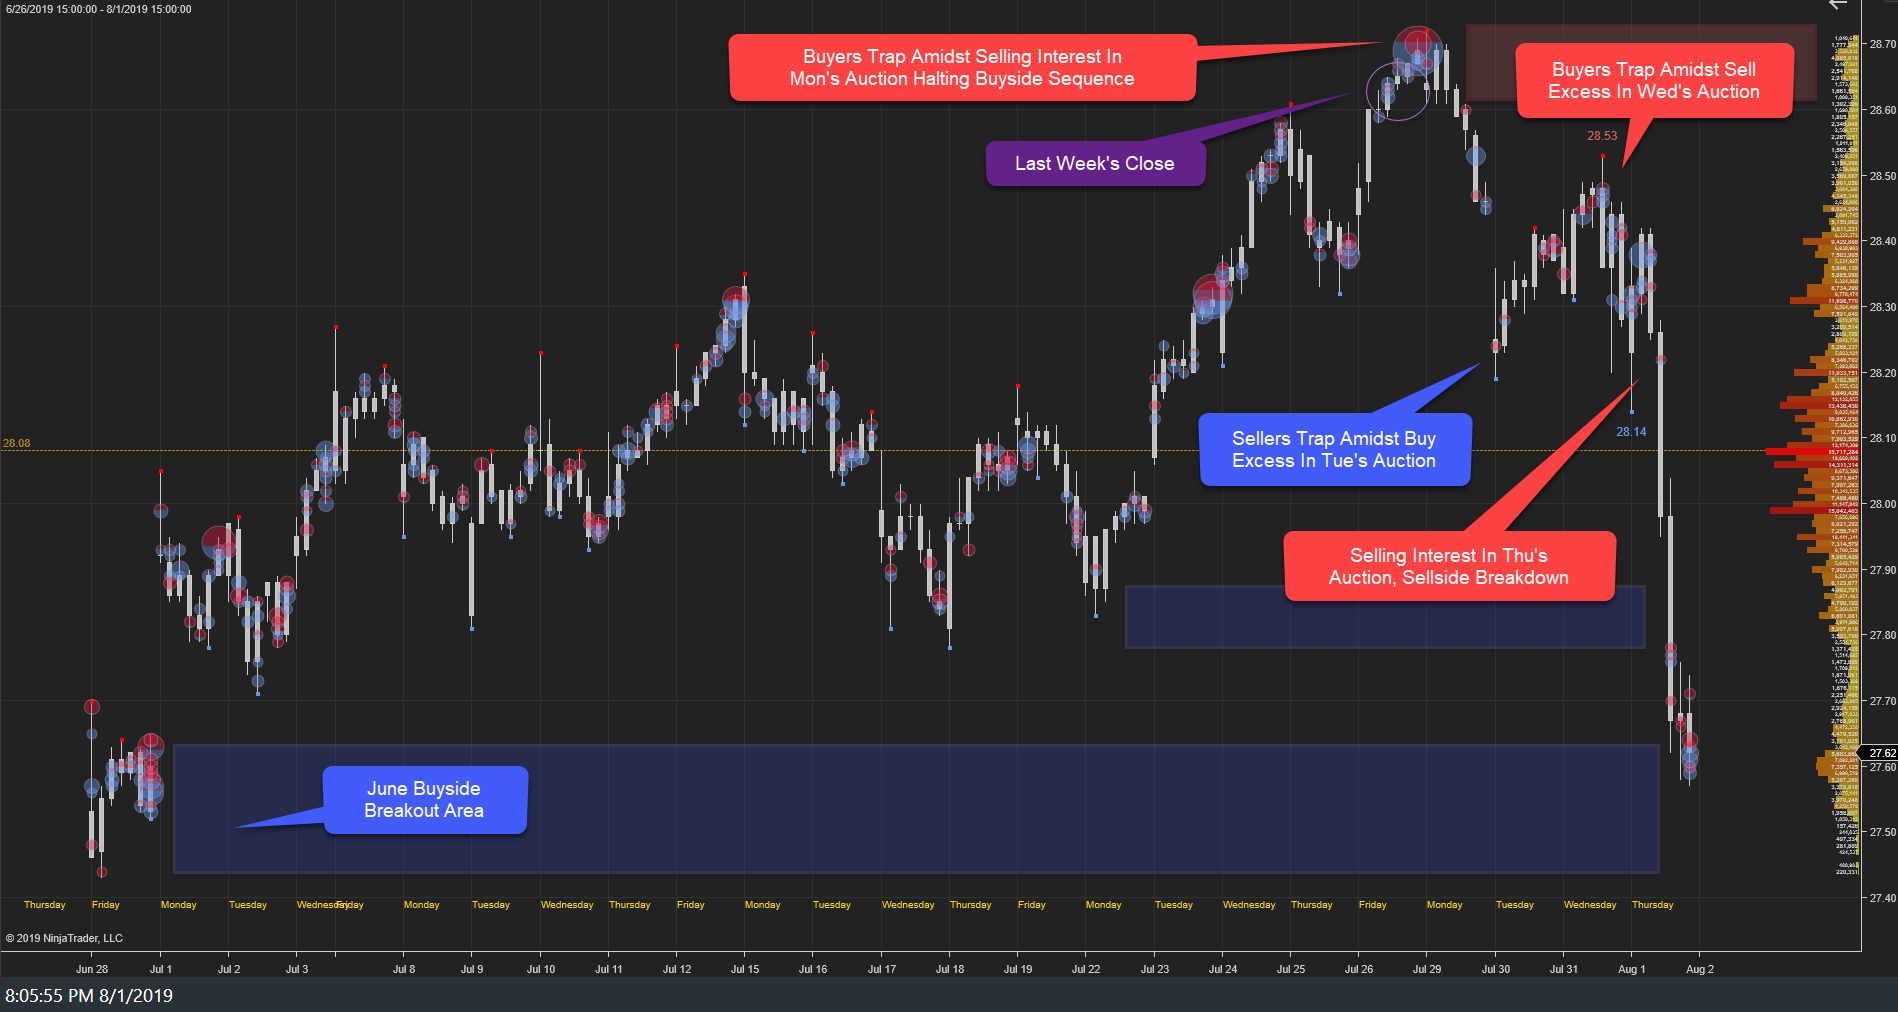 XLF Weekly: Sell-Side Continuation Following Last Week's 2019 High And Initial Correction